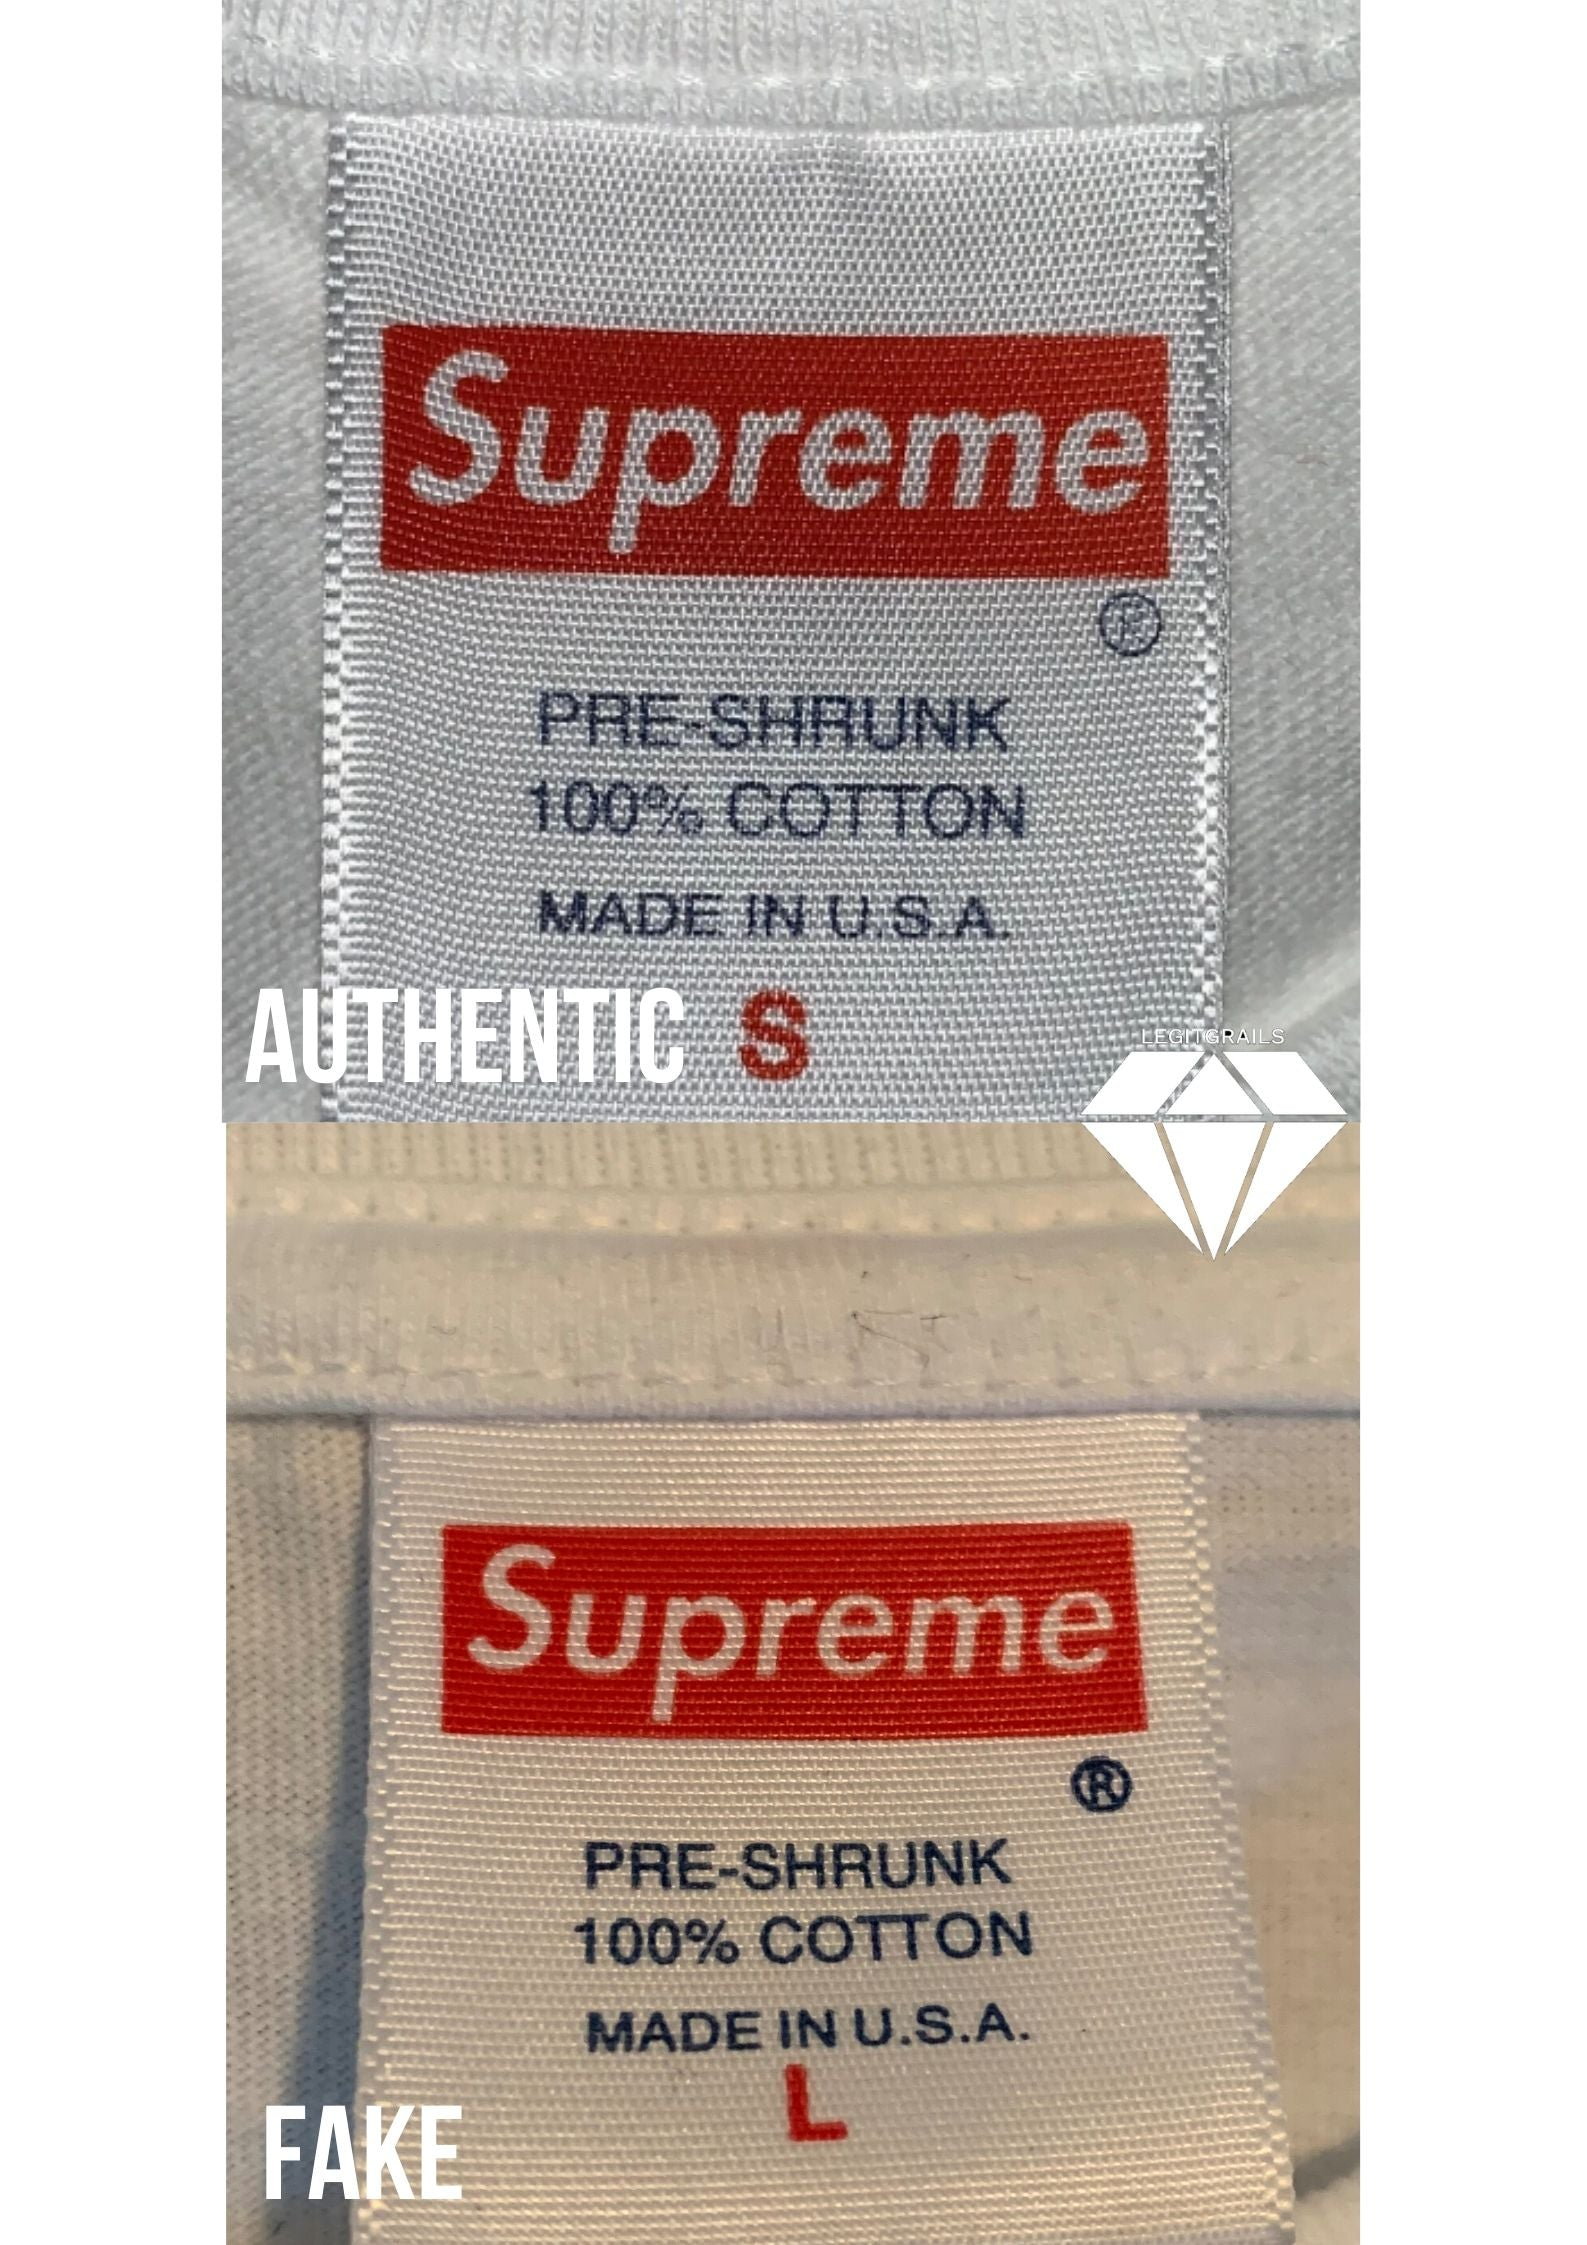 Supreme Swarovski Neck Tag Real vs Fake | Supreme Legit Check